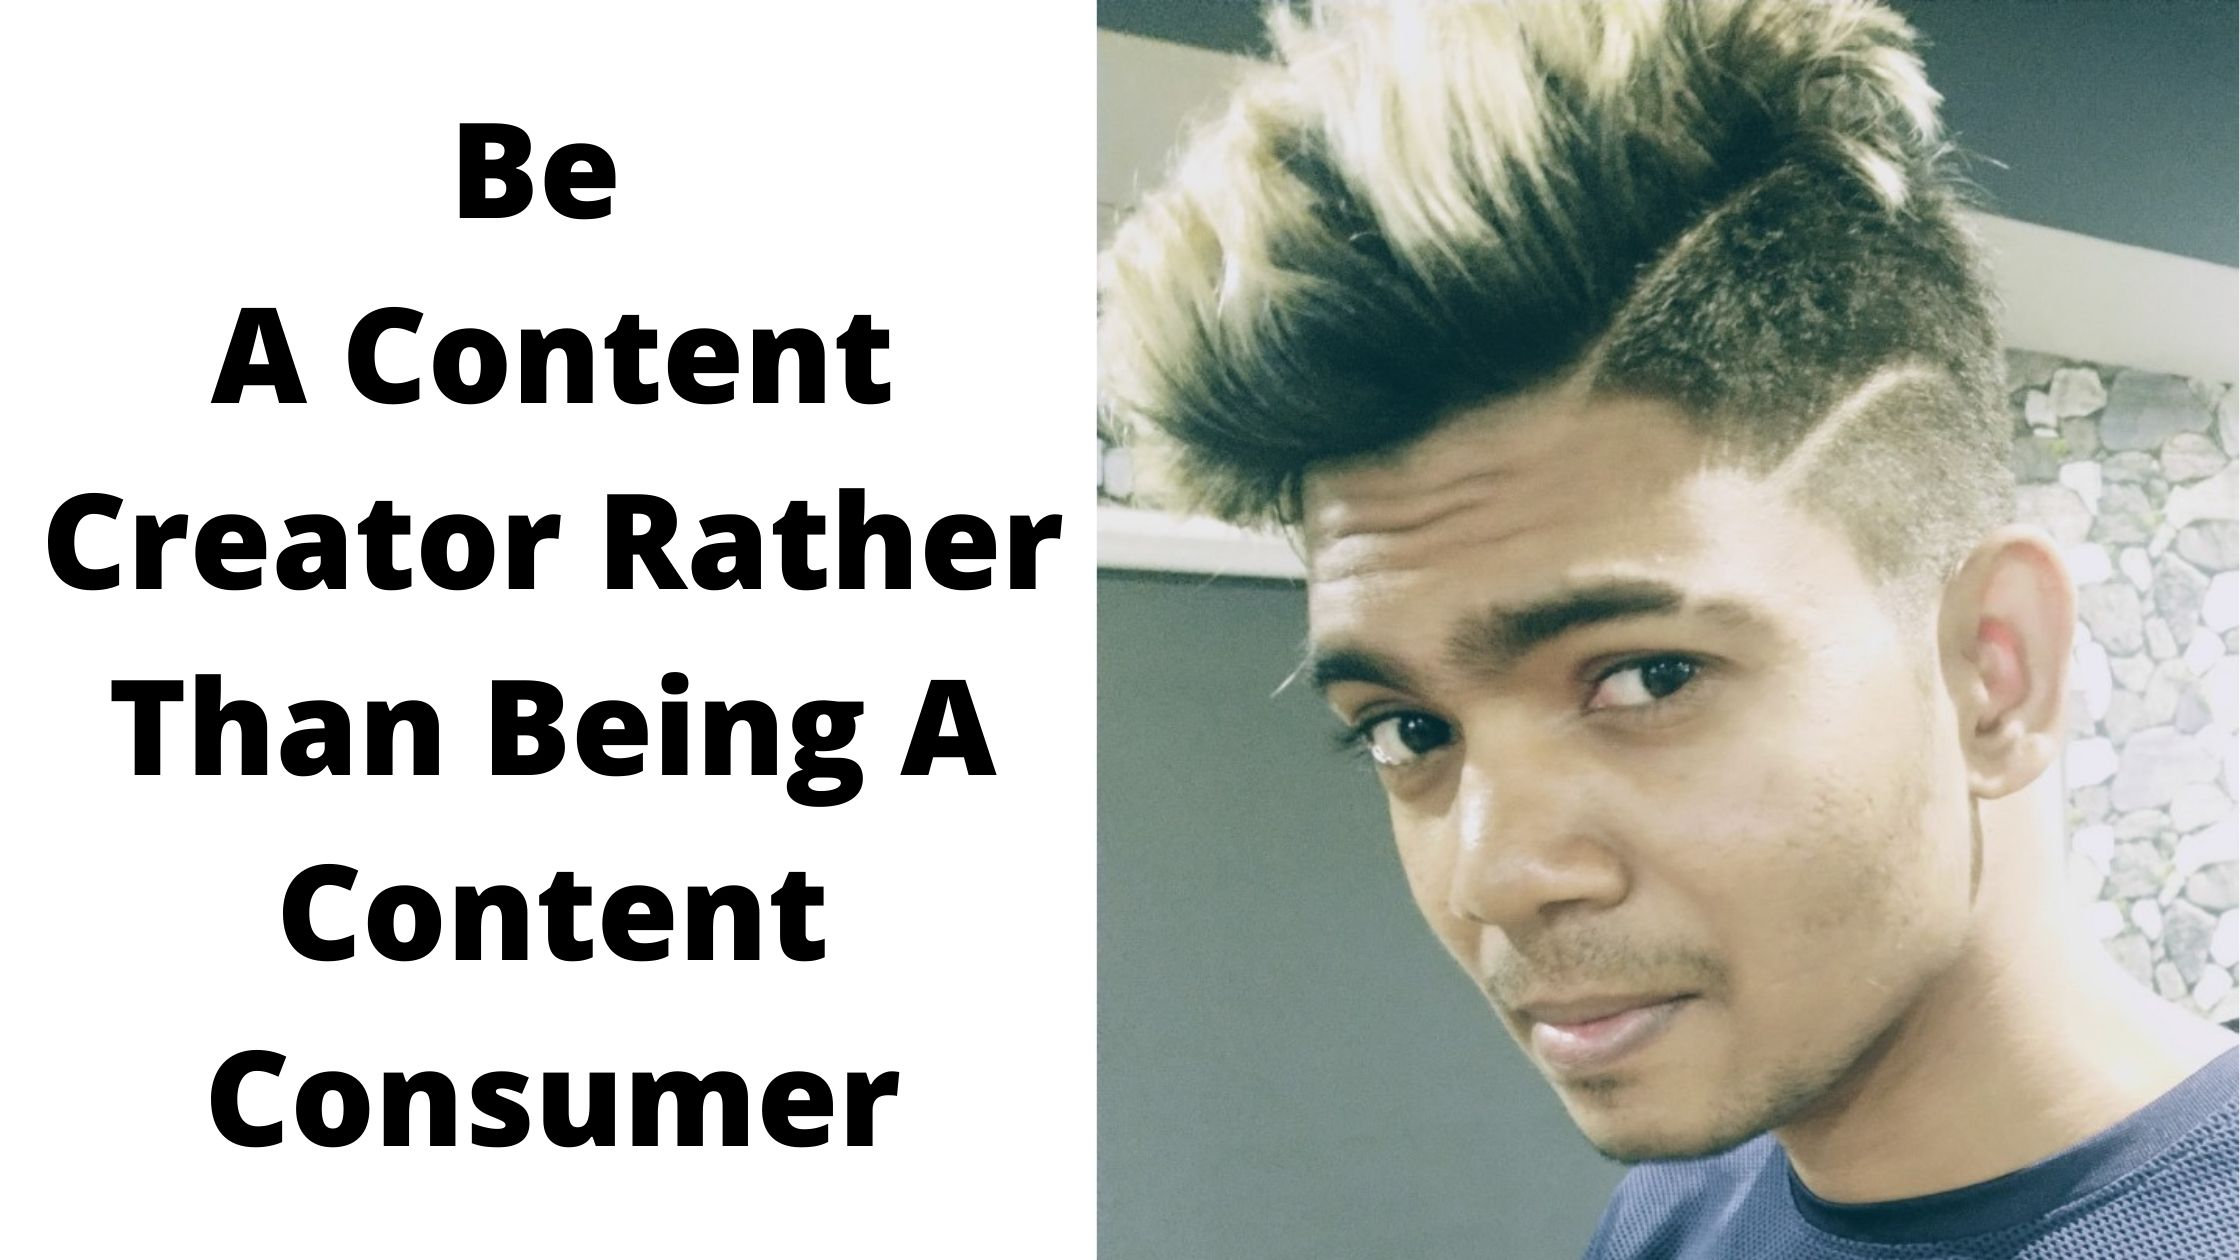 Be A Content Creator Rather Than Being A Content Consumer